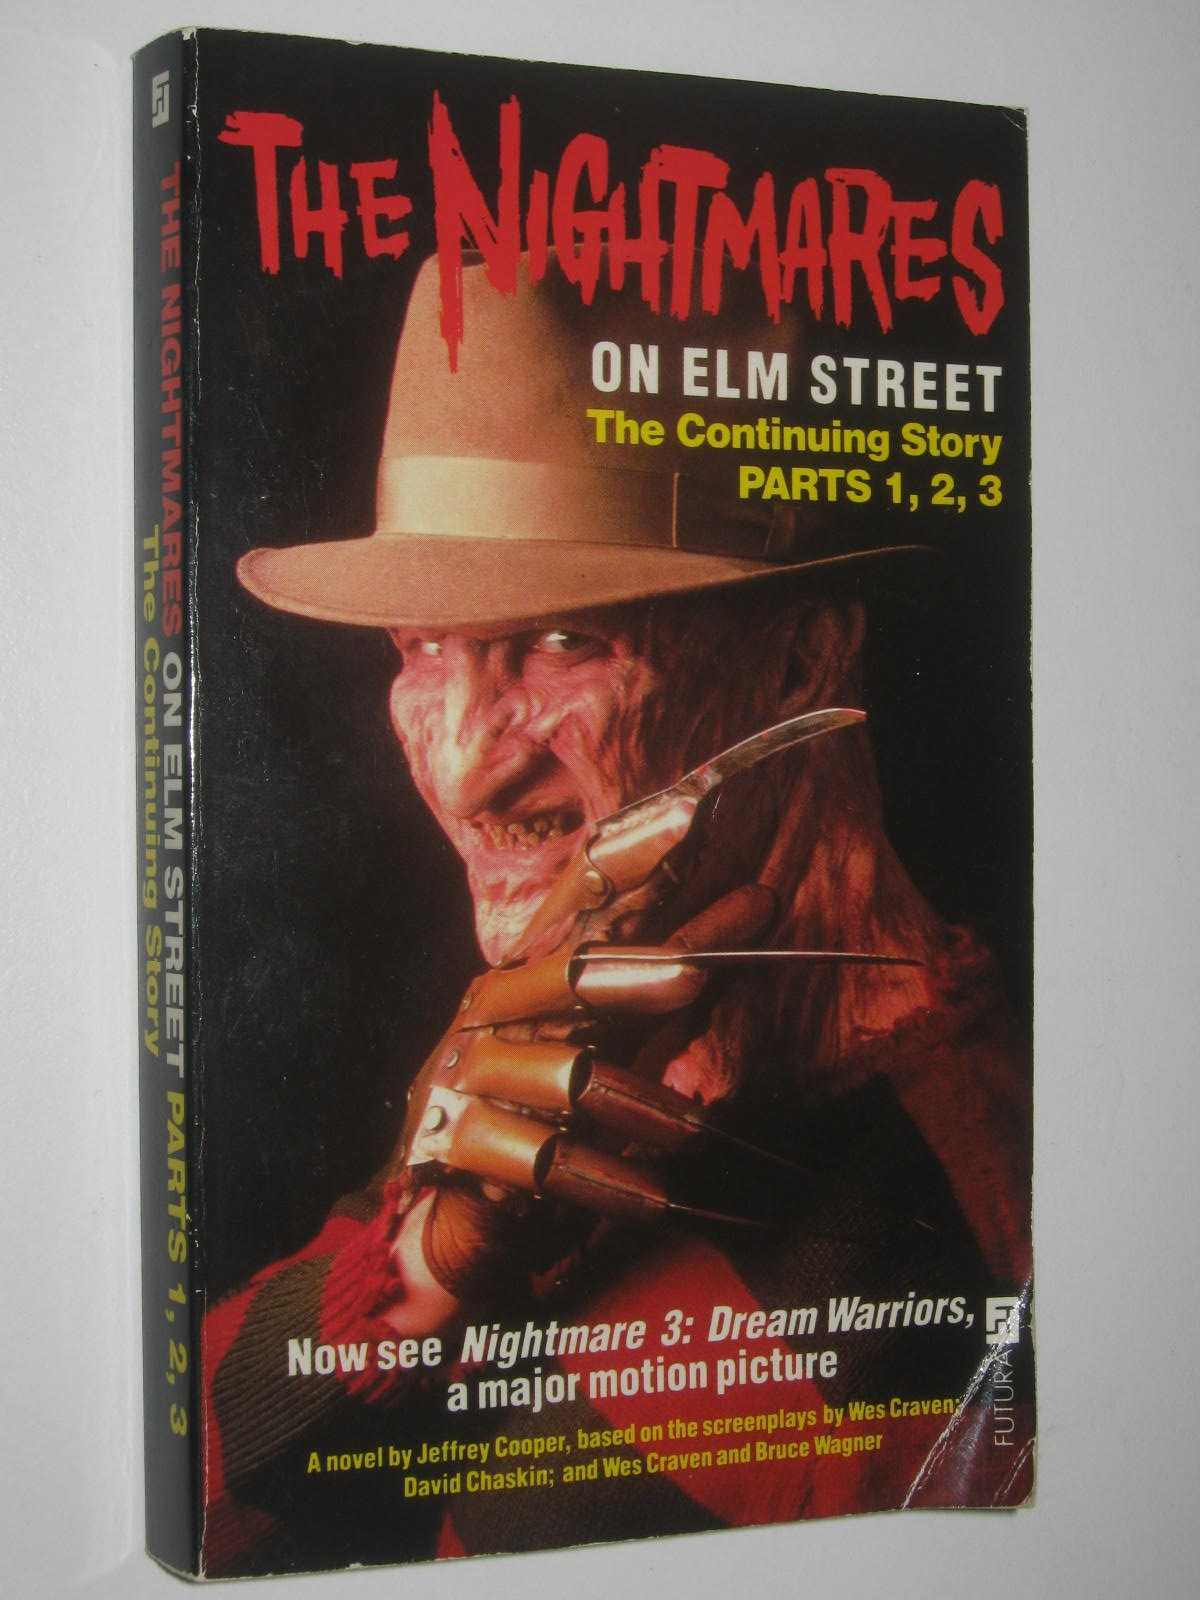 Image for The Nightmares on Elm Street : Parts 1, 2, 3 the Continuing Story